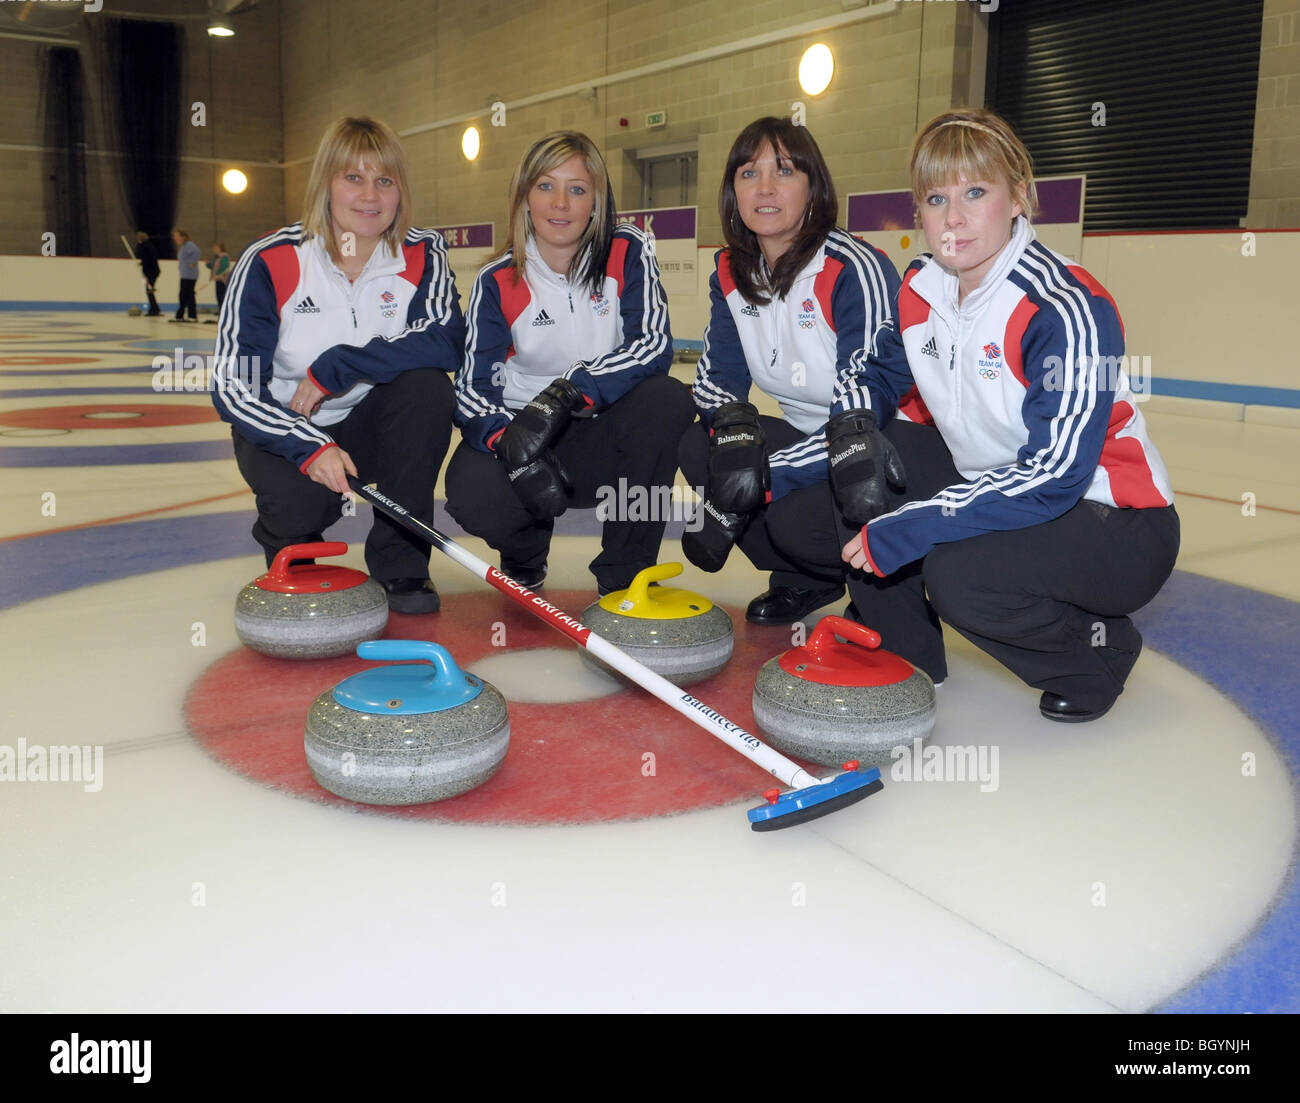 Curling Broom Stock Photos & Curling Broom Stock Images ...